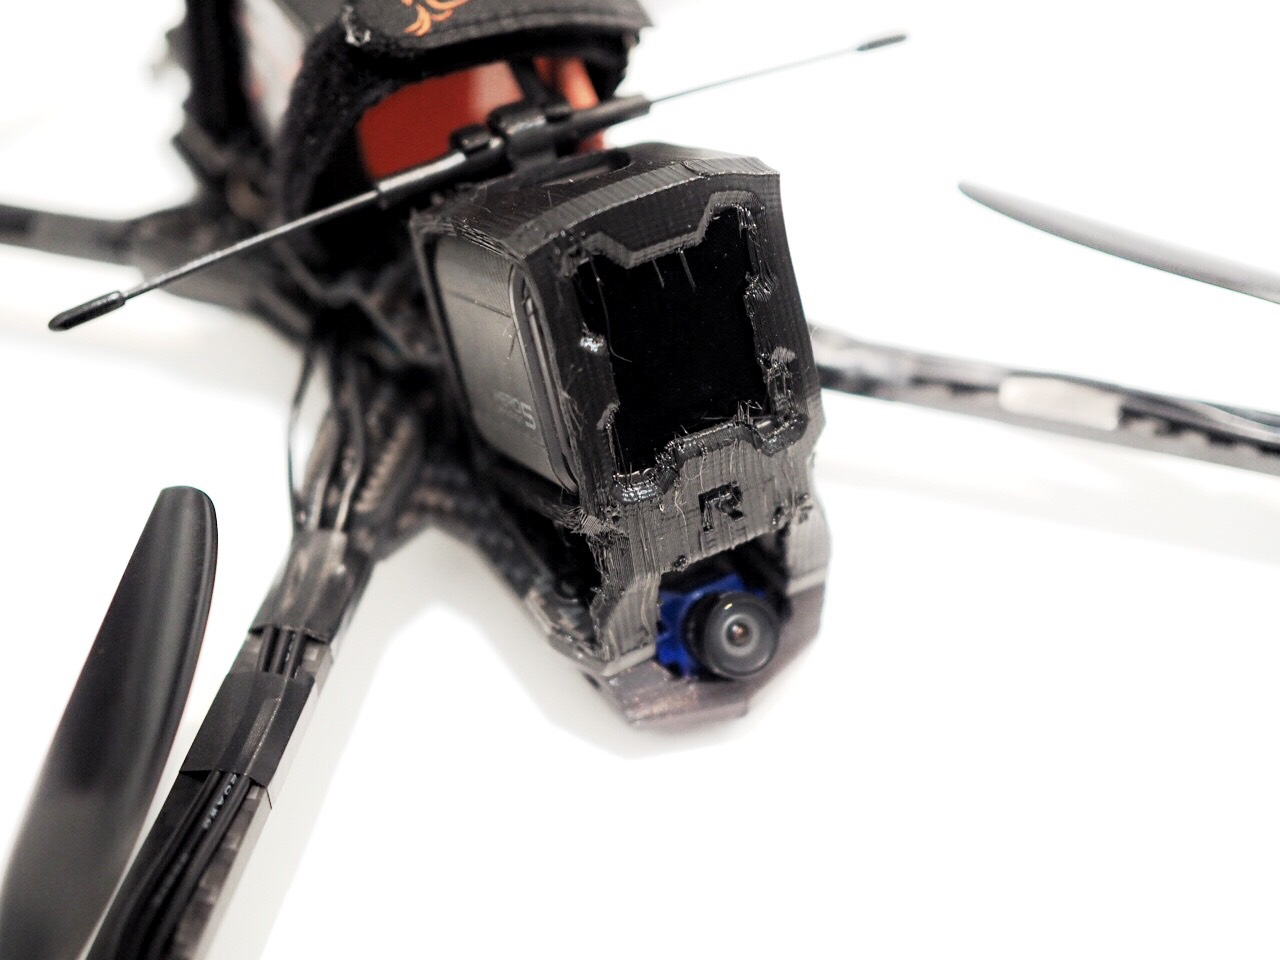 Long Range Fpv Quadcopter Build Log Raggio Lungo Getfpv Learn Wiring Harness Falcon Multirotors Carbon Fiber Frame Arm Brace Tpu 3d Printed Gopro Mount Wedge Tmotor